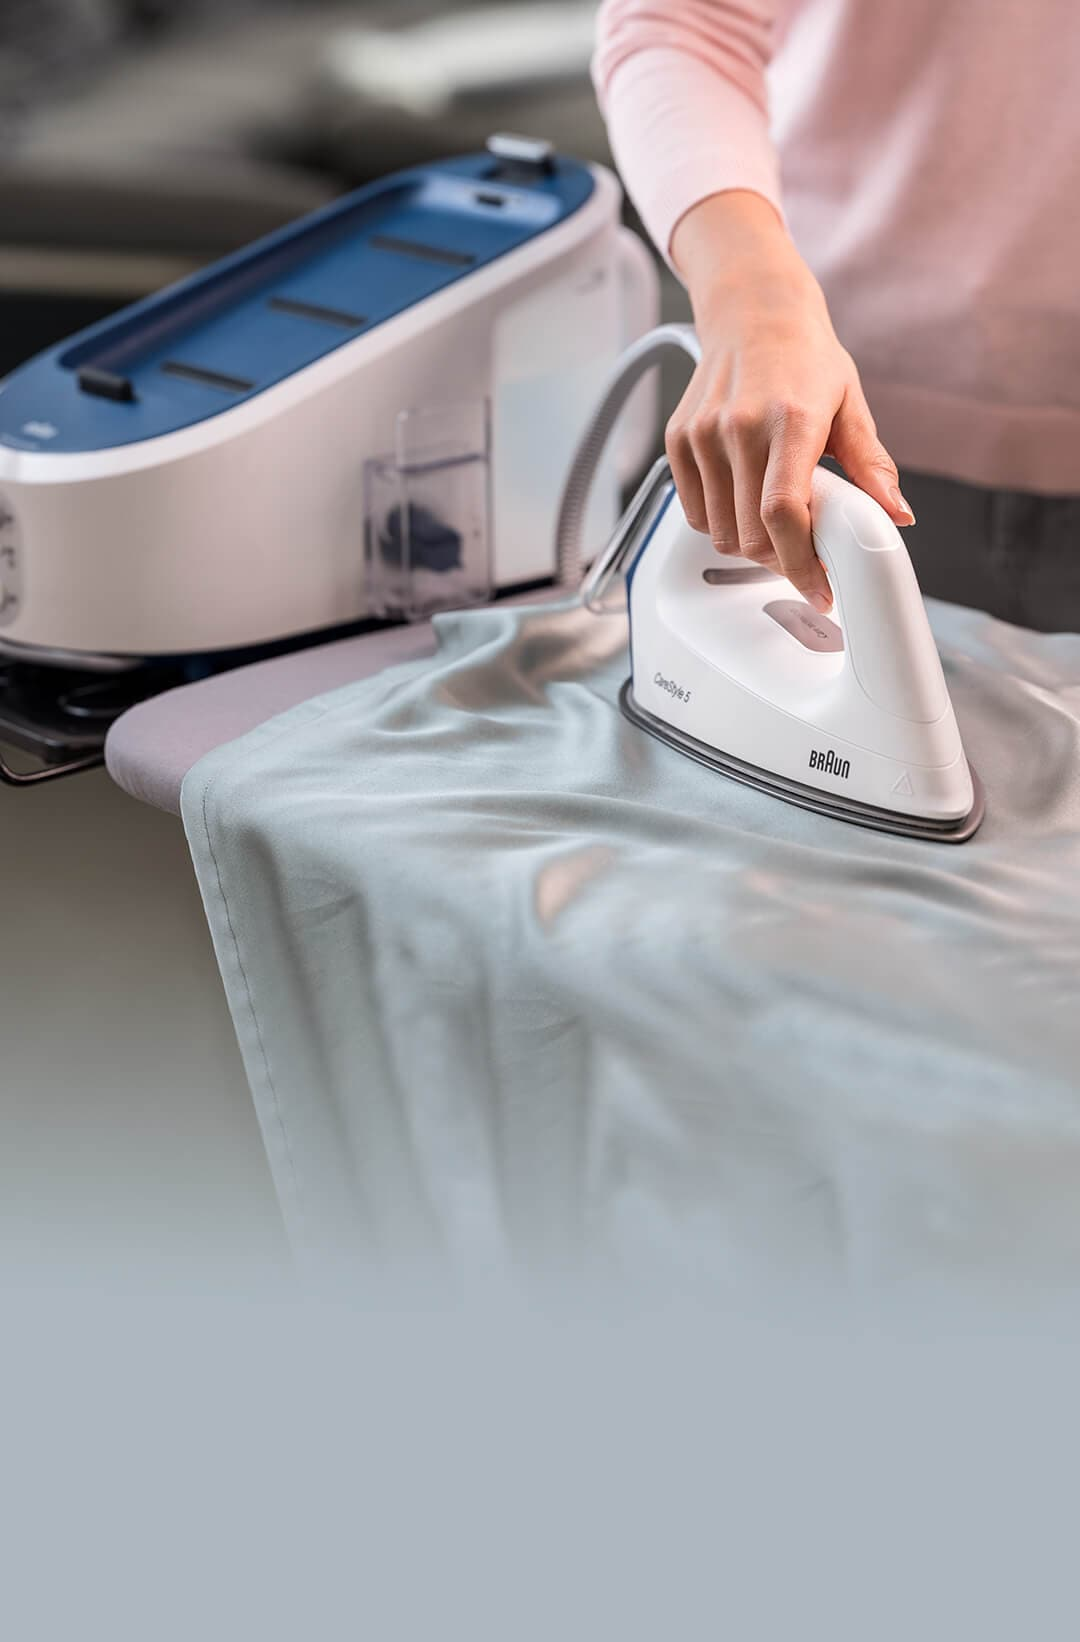 Braun CareStyle 5 Steam generator iron